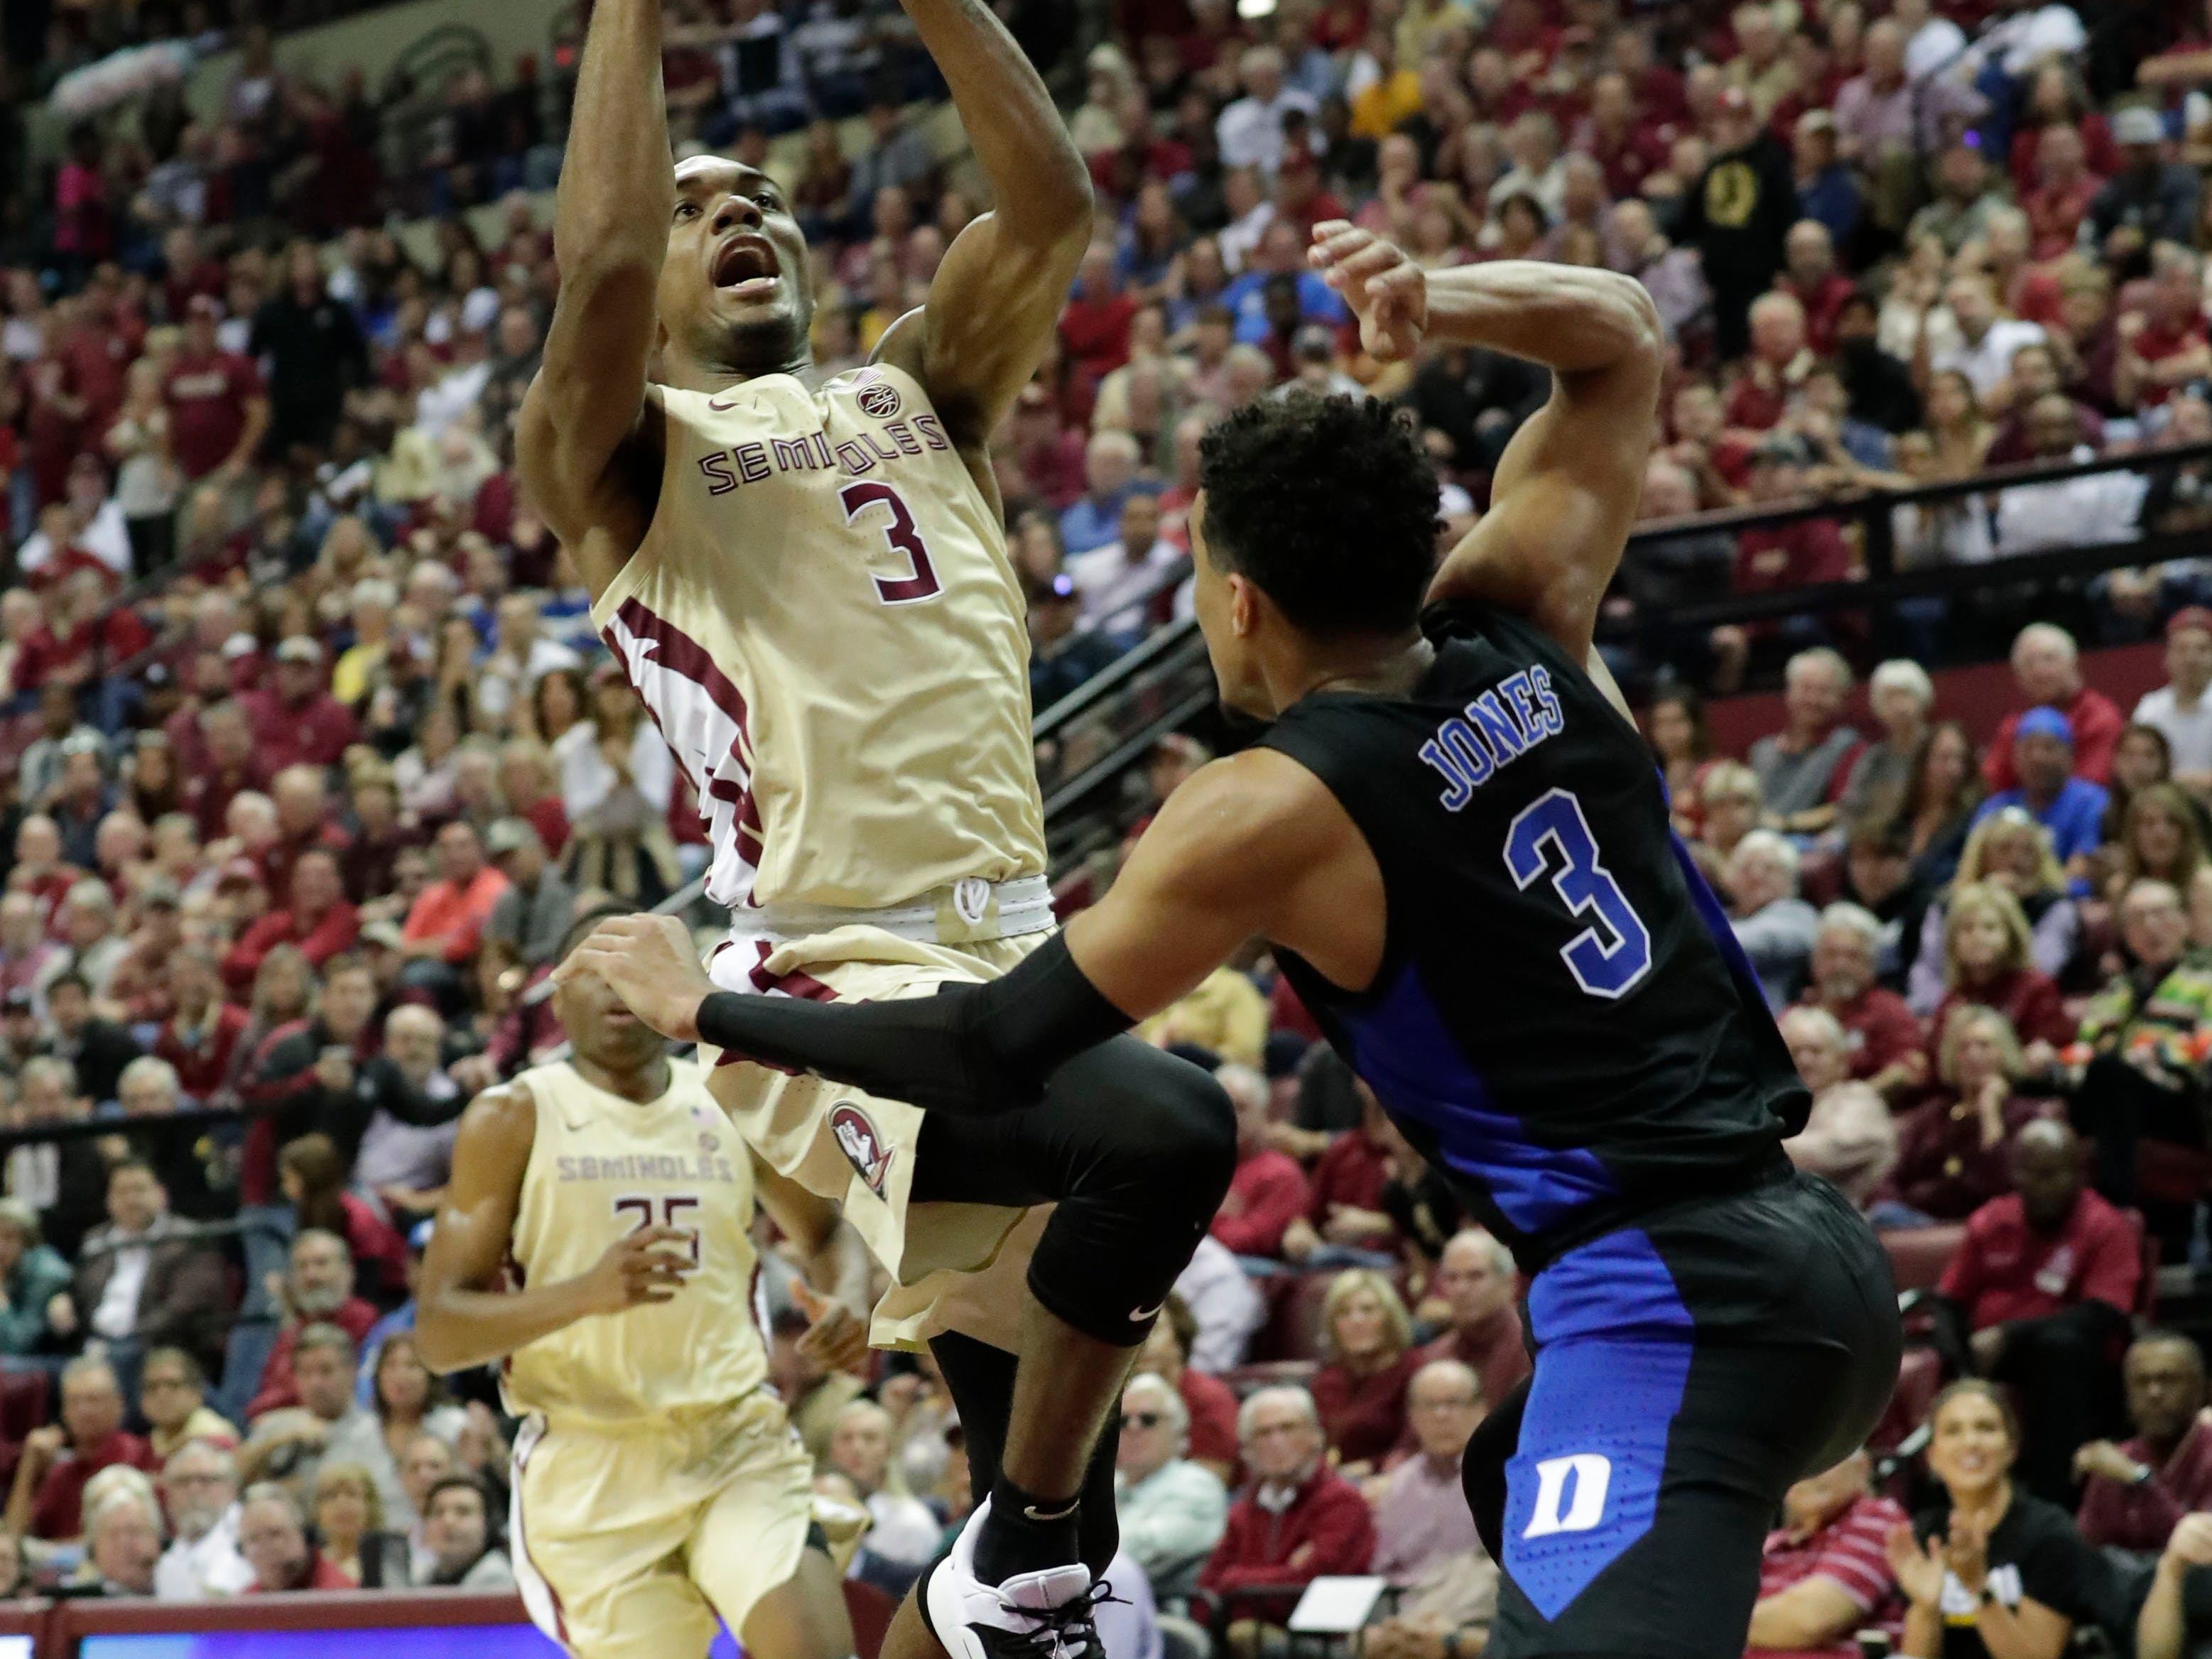 Florida State Seminoles guard Trent Forrest (3) drives the ball in for a layup while Duke Blue Devils guard Tre Jones (3) tries to stop him. Ranked 13 in the ACC, the Florida State Seminoles host the number 1 team, the Duke Blue Devils, at the Tucker Civic Center, Saturday, Jan. 12, 2019.